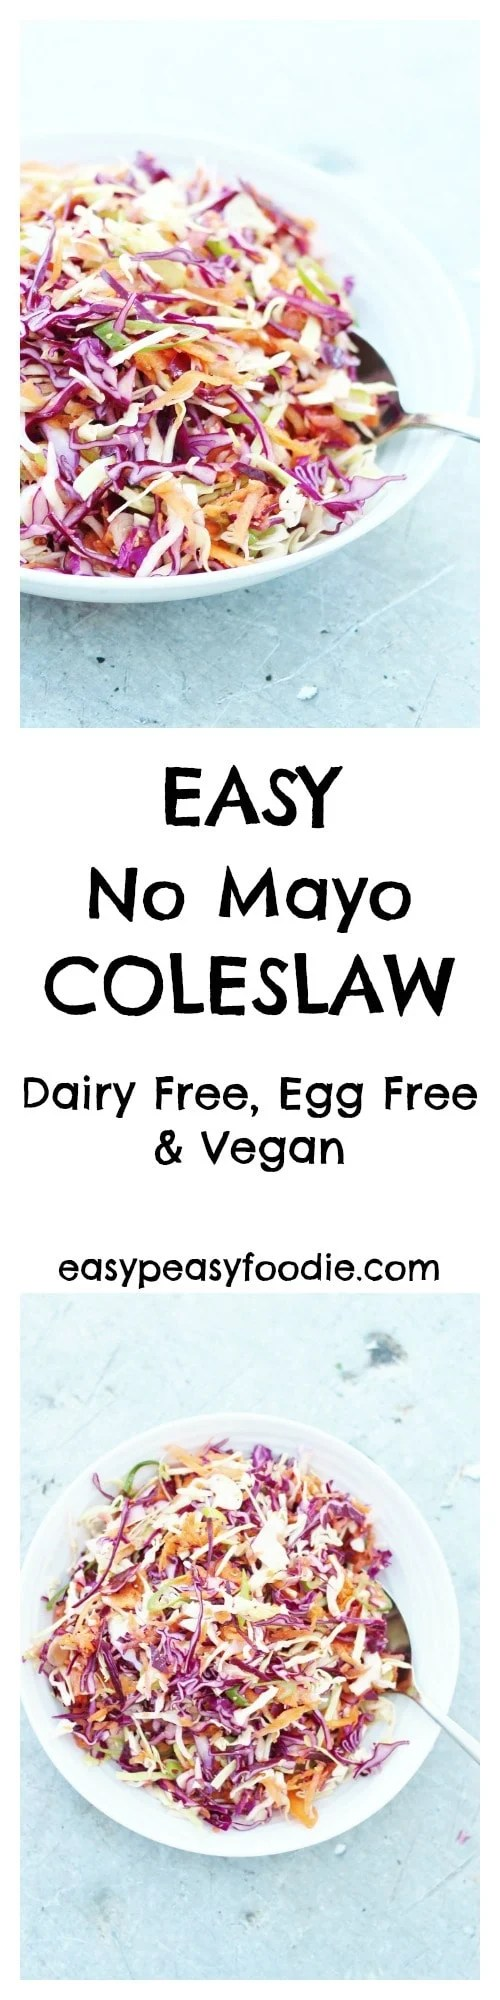 A lighter, fresher coleslaw…that tastes much better than the kind that's dripping with cream and mayonnaise AND is easy peasy to make, my Easy No Mayo Coleslaw is perfect for picnics, BBQs and potlucks…and even amazing on top of a baked potato! Plus this version is dairy free and egg free and vegan, so can be enjoyed by almost everyone :-D #DairyFree #EggFree #Vegan #NoMayo #Coleslaw